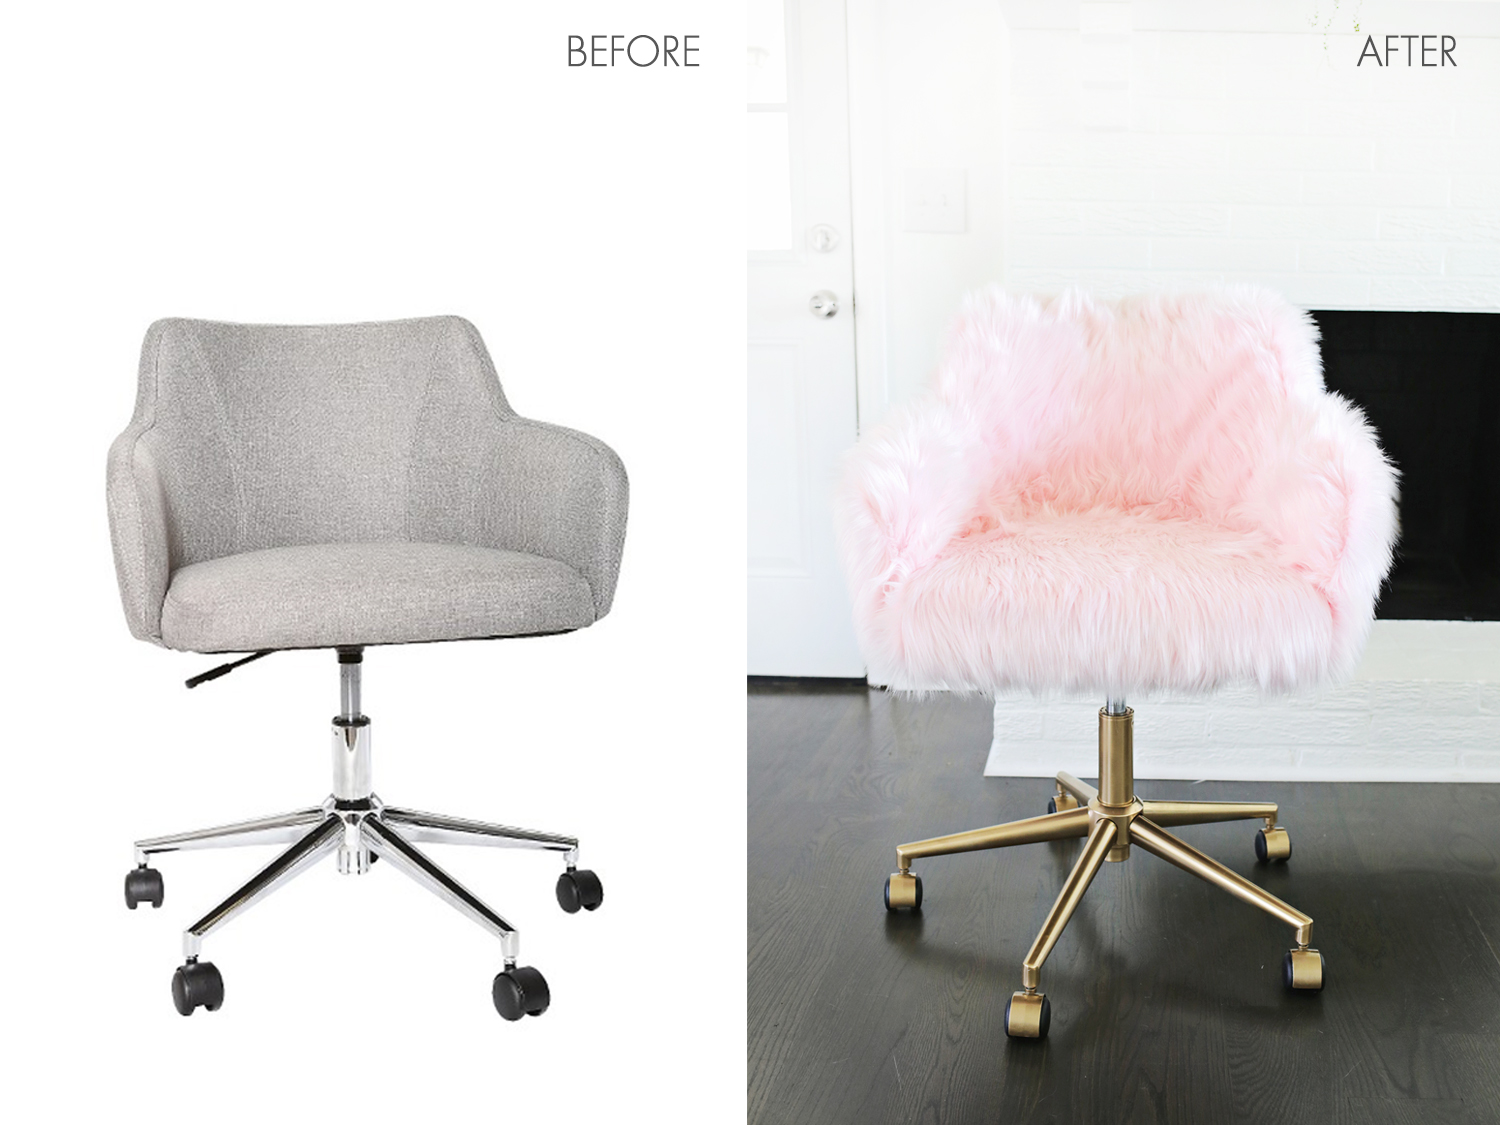 fun desk chairs high chair on wheels project restyle office makeover a beautiful mess so cute click through for tutorial